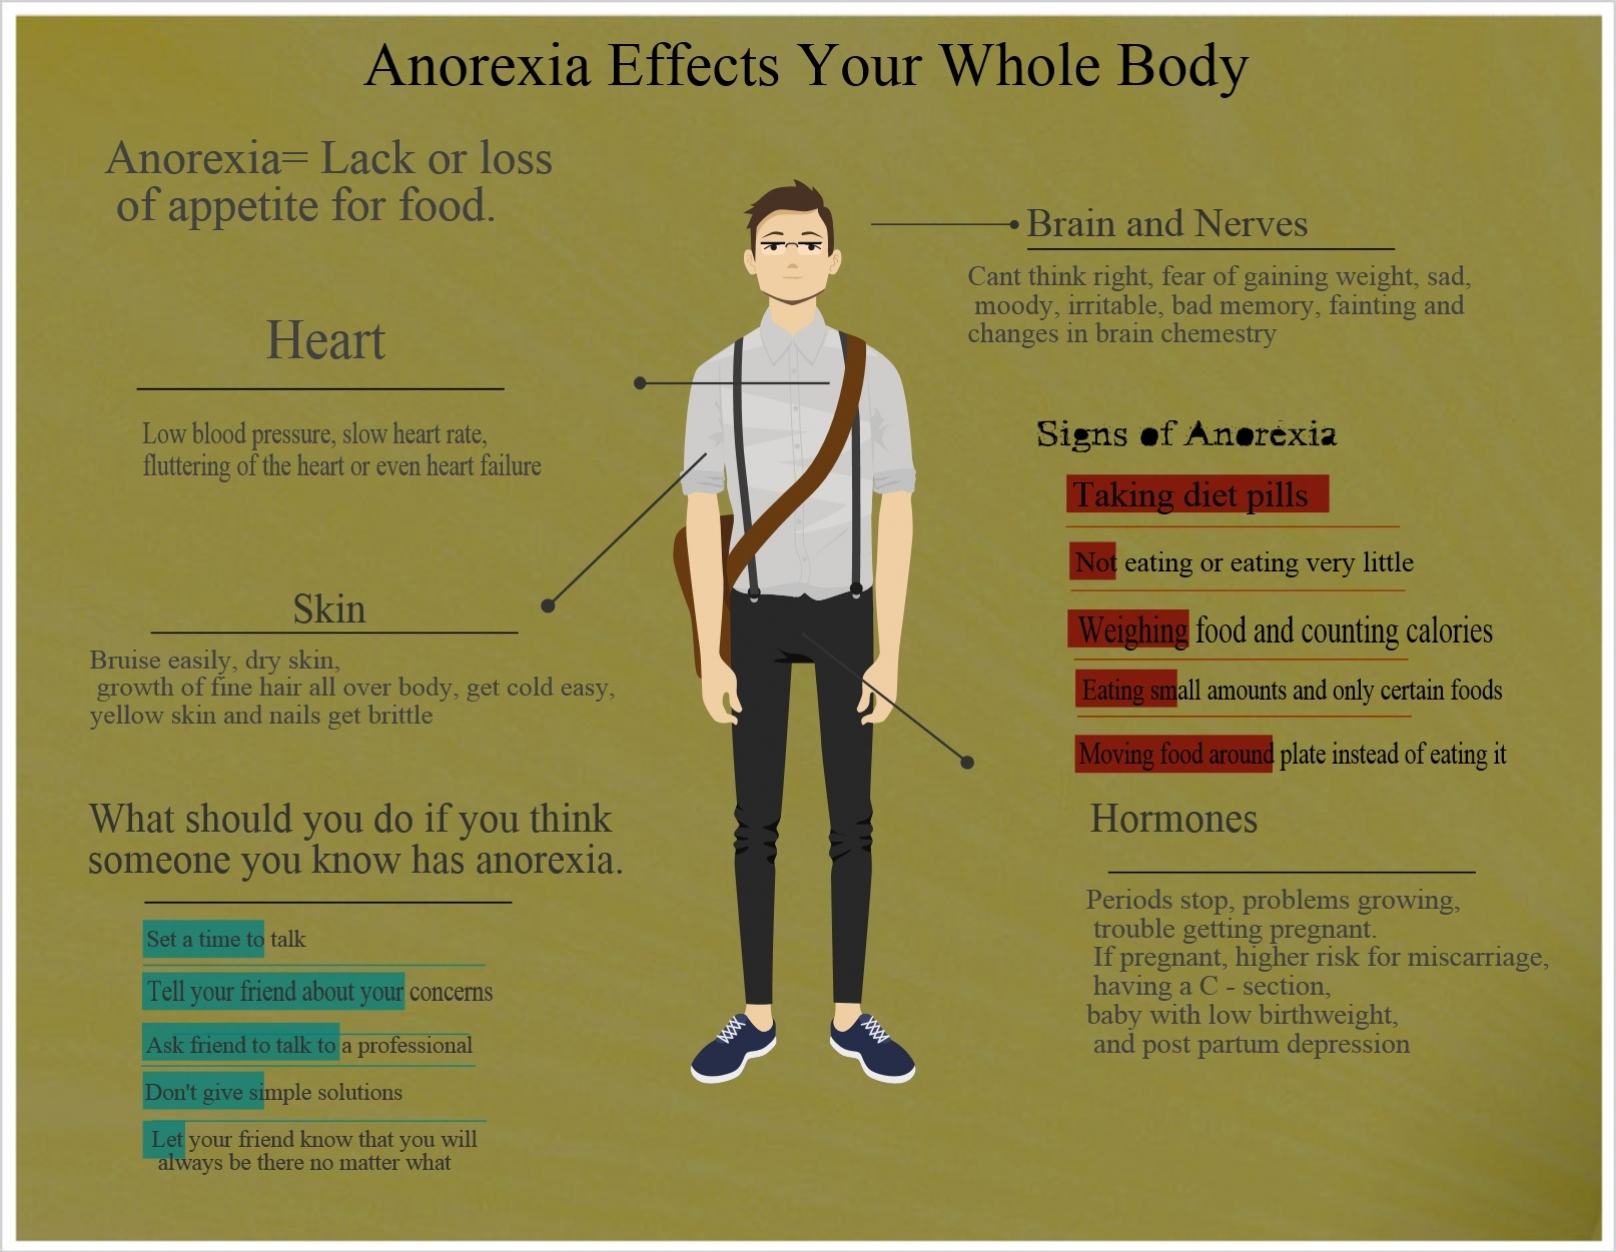 anorexia effects of pro anorexia